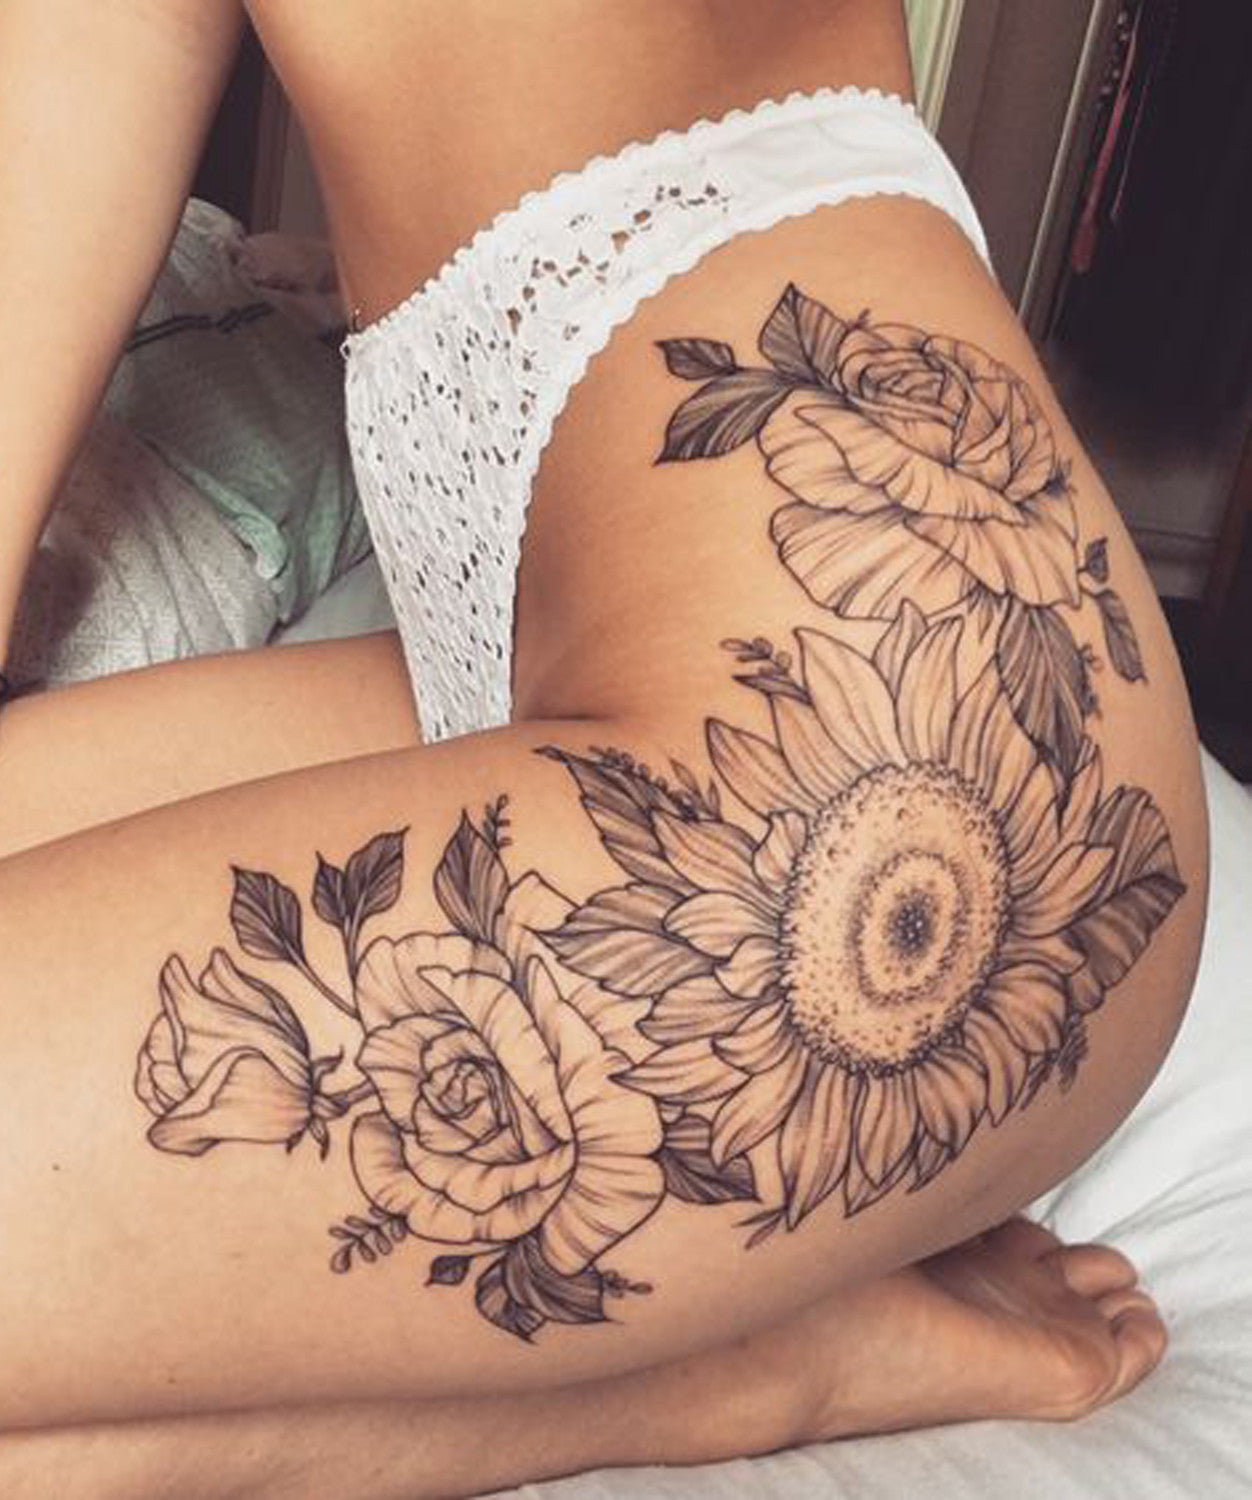 Tattoo Designs Thigh: Vintage Black And White Realistic Sunflower Floral Leg